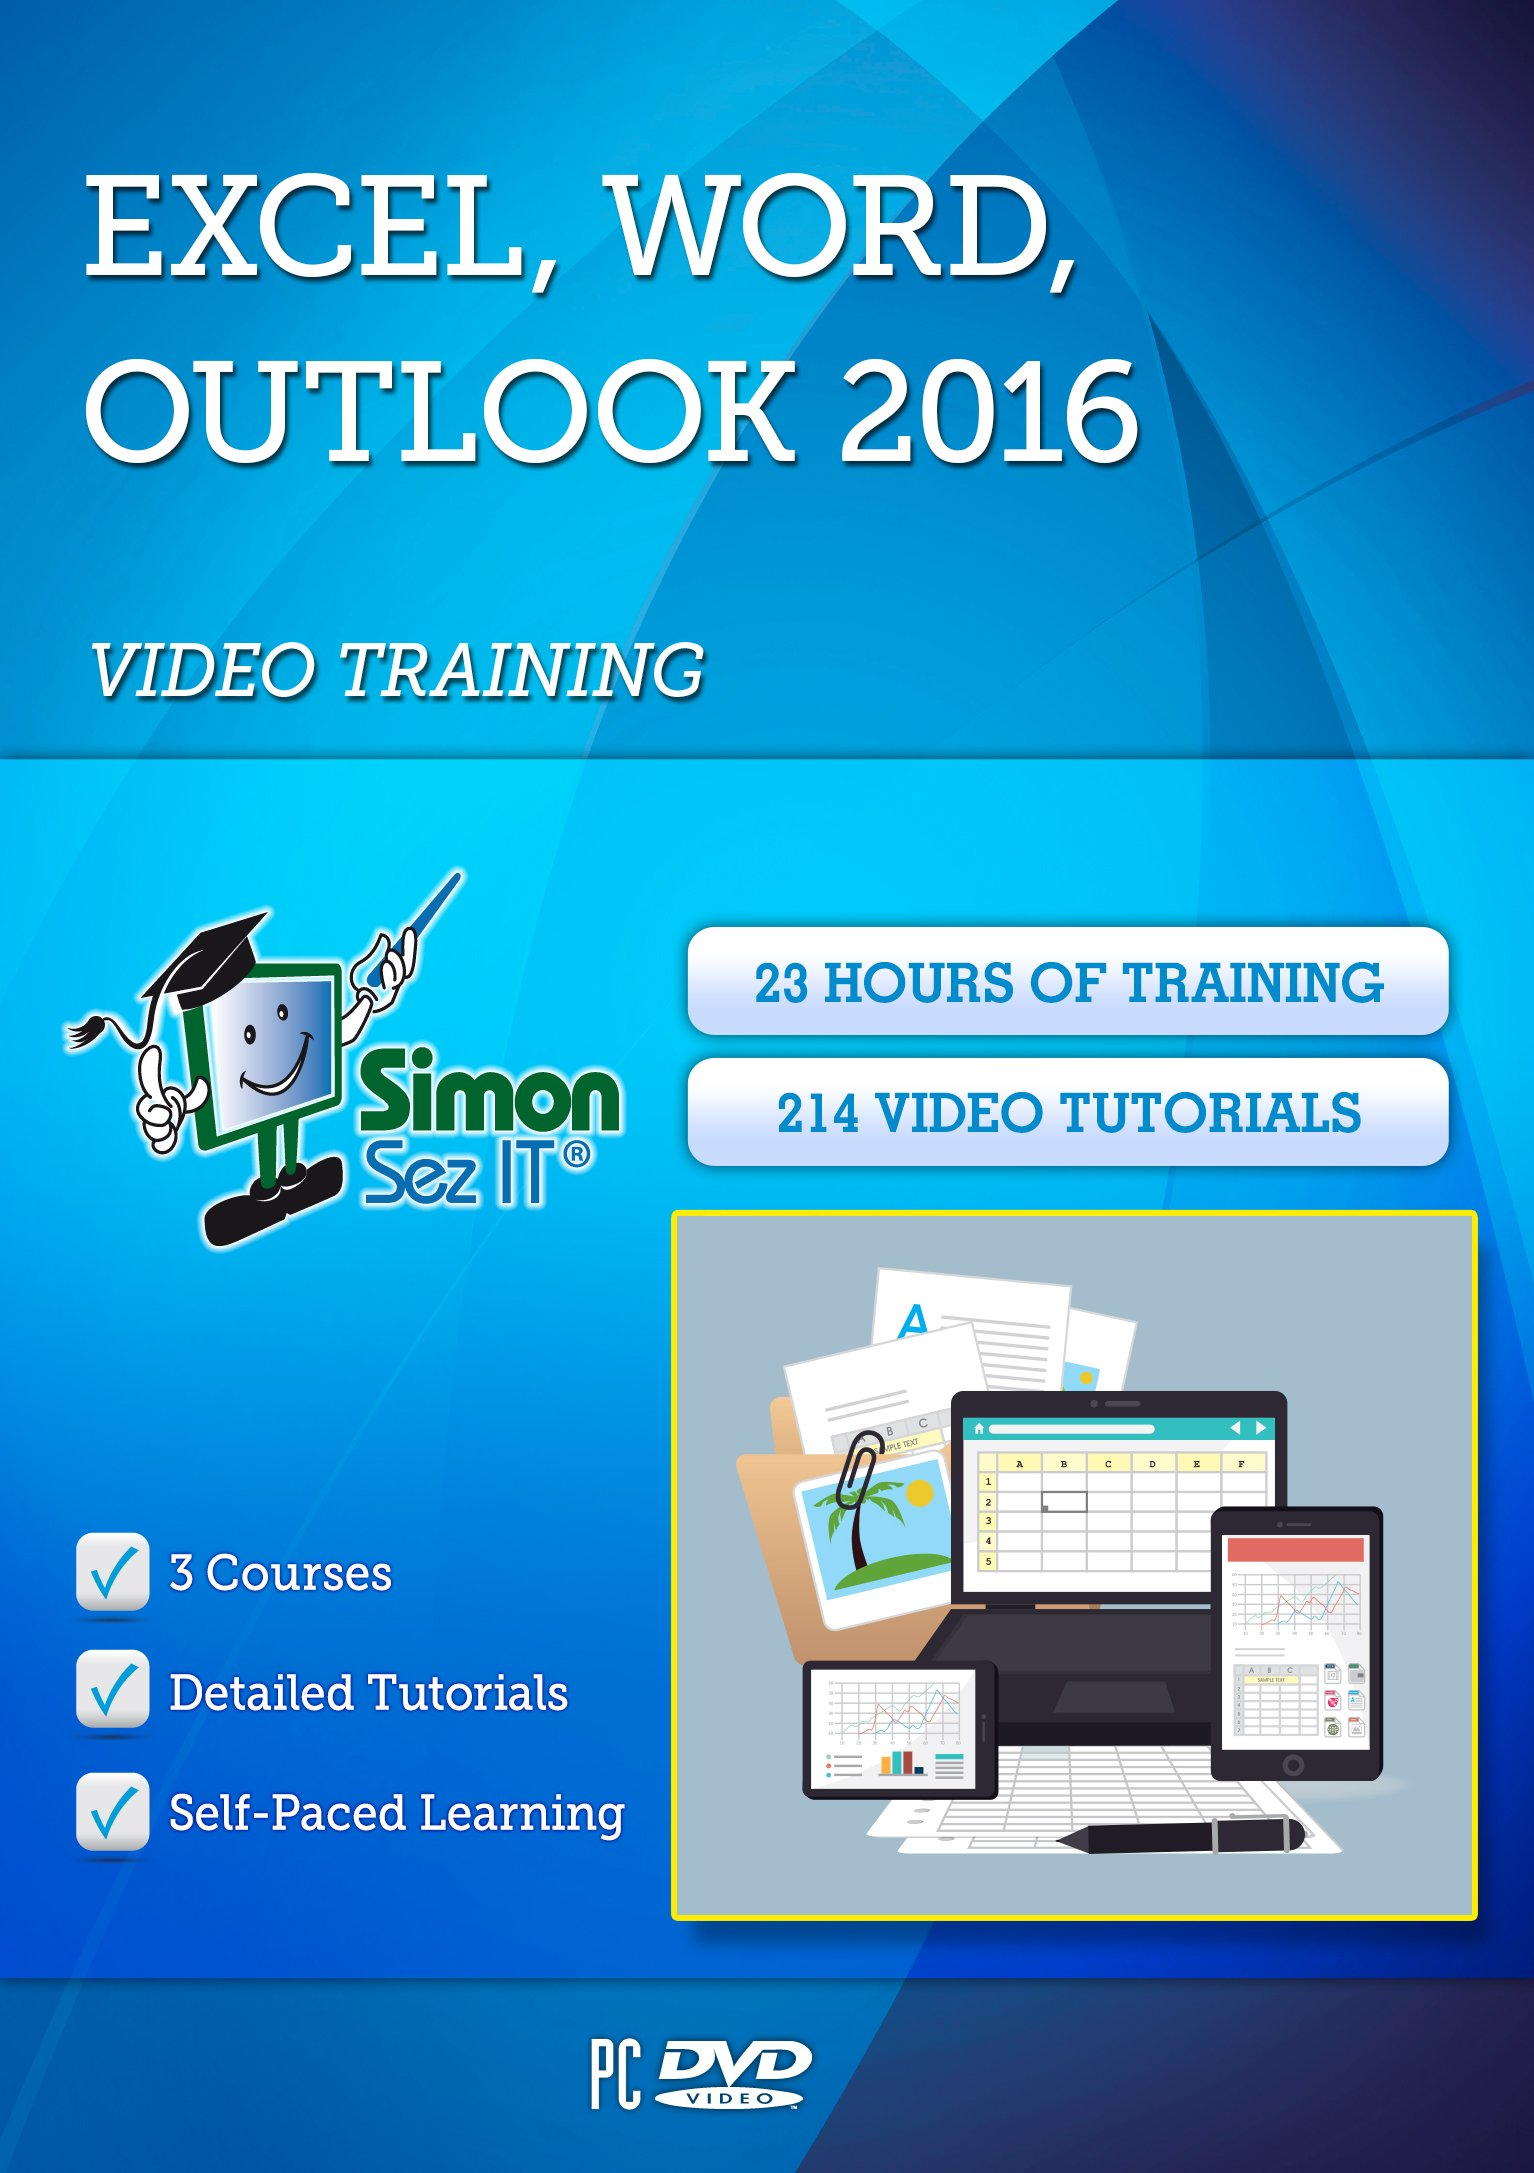 Excel, Outlook & Word 2016 For Beginners By Simon Sez IT: 3 Self-Based Courses With 23-Hour-Long Video Training Tutorials & Exercise Files by Simon Sez IT